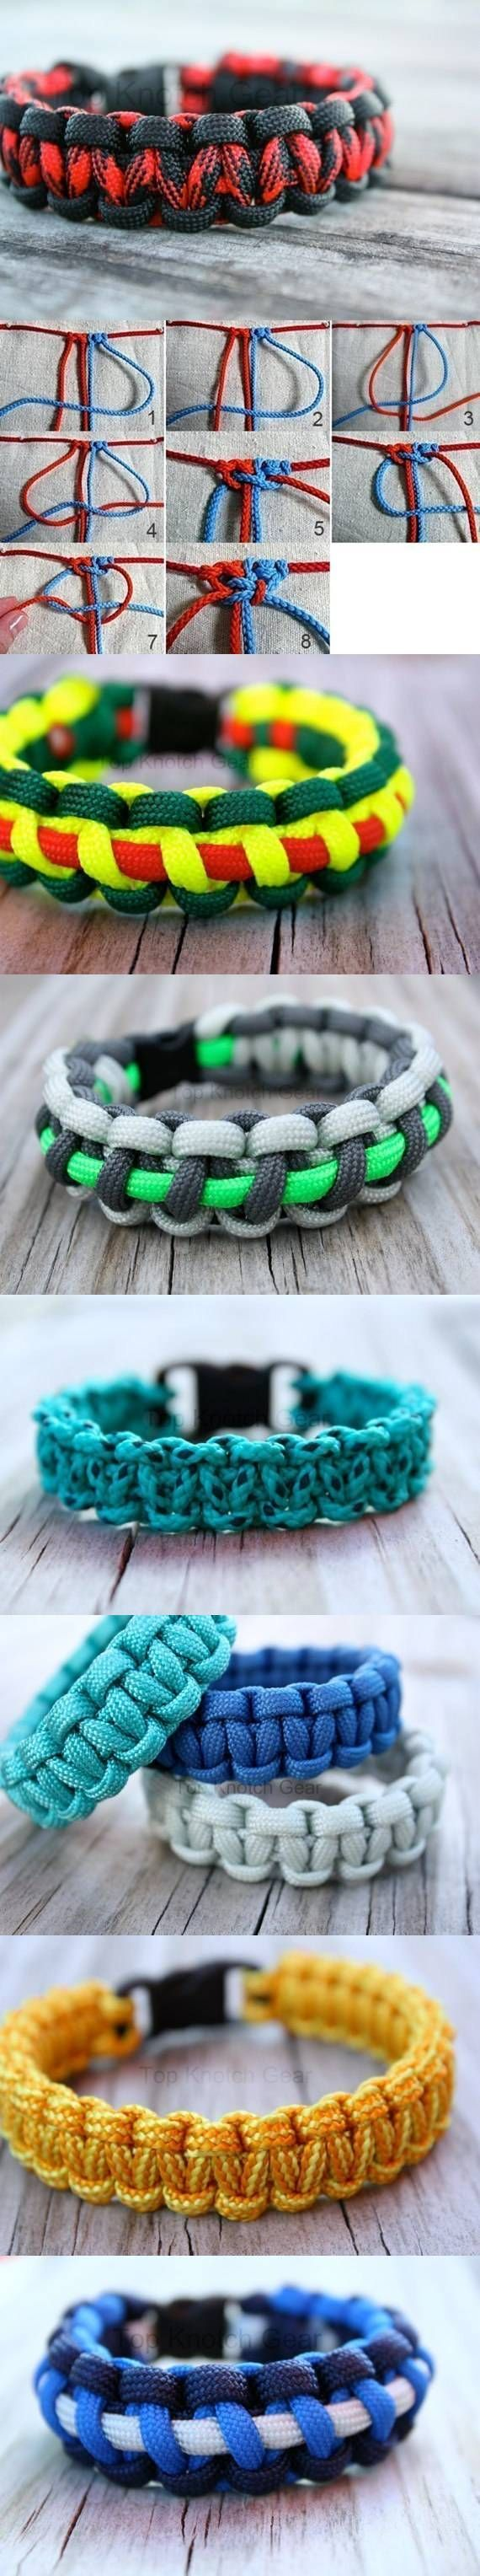 DIY Root Node Bracelets DIY Projects | UsefulDIY.com